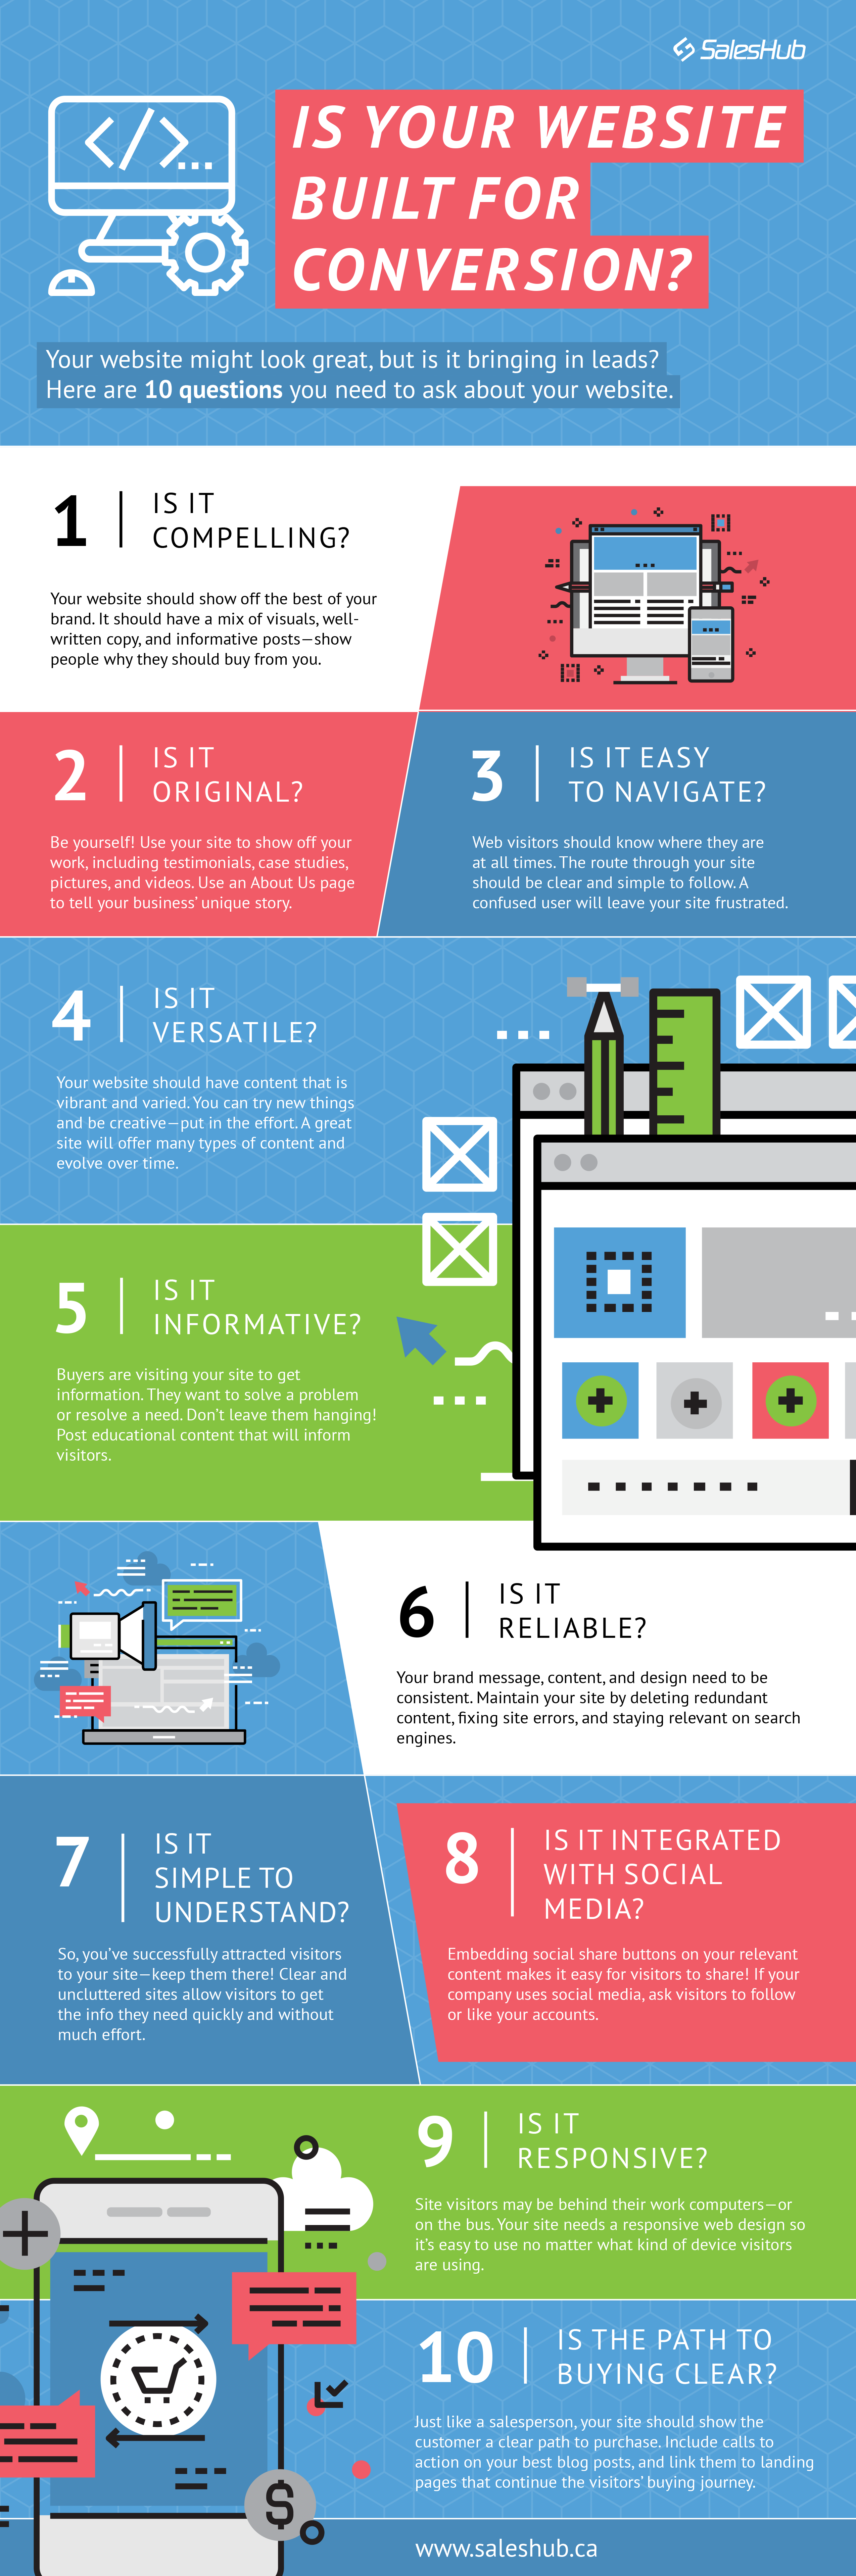 Is-Your-Website-Built-For-Conversion--Infographic.png